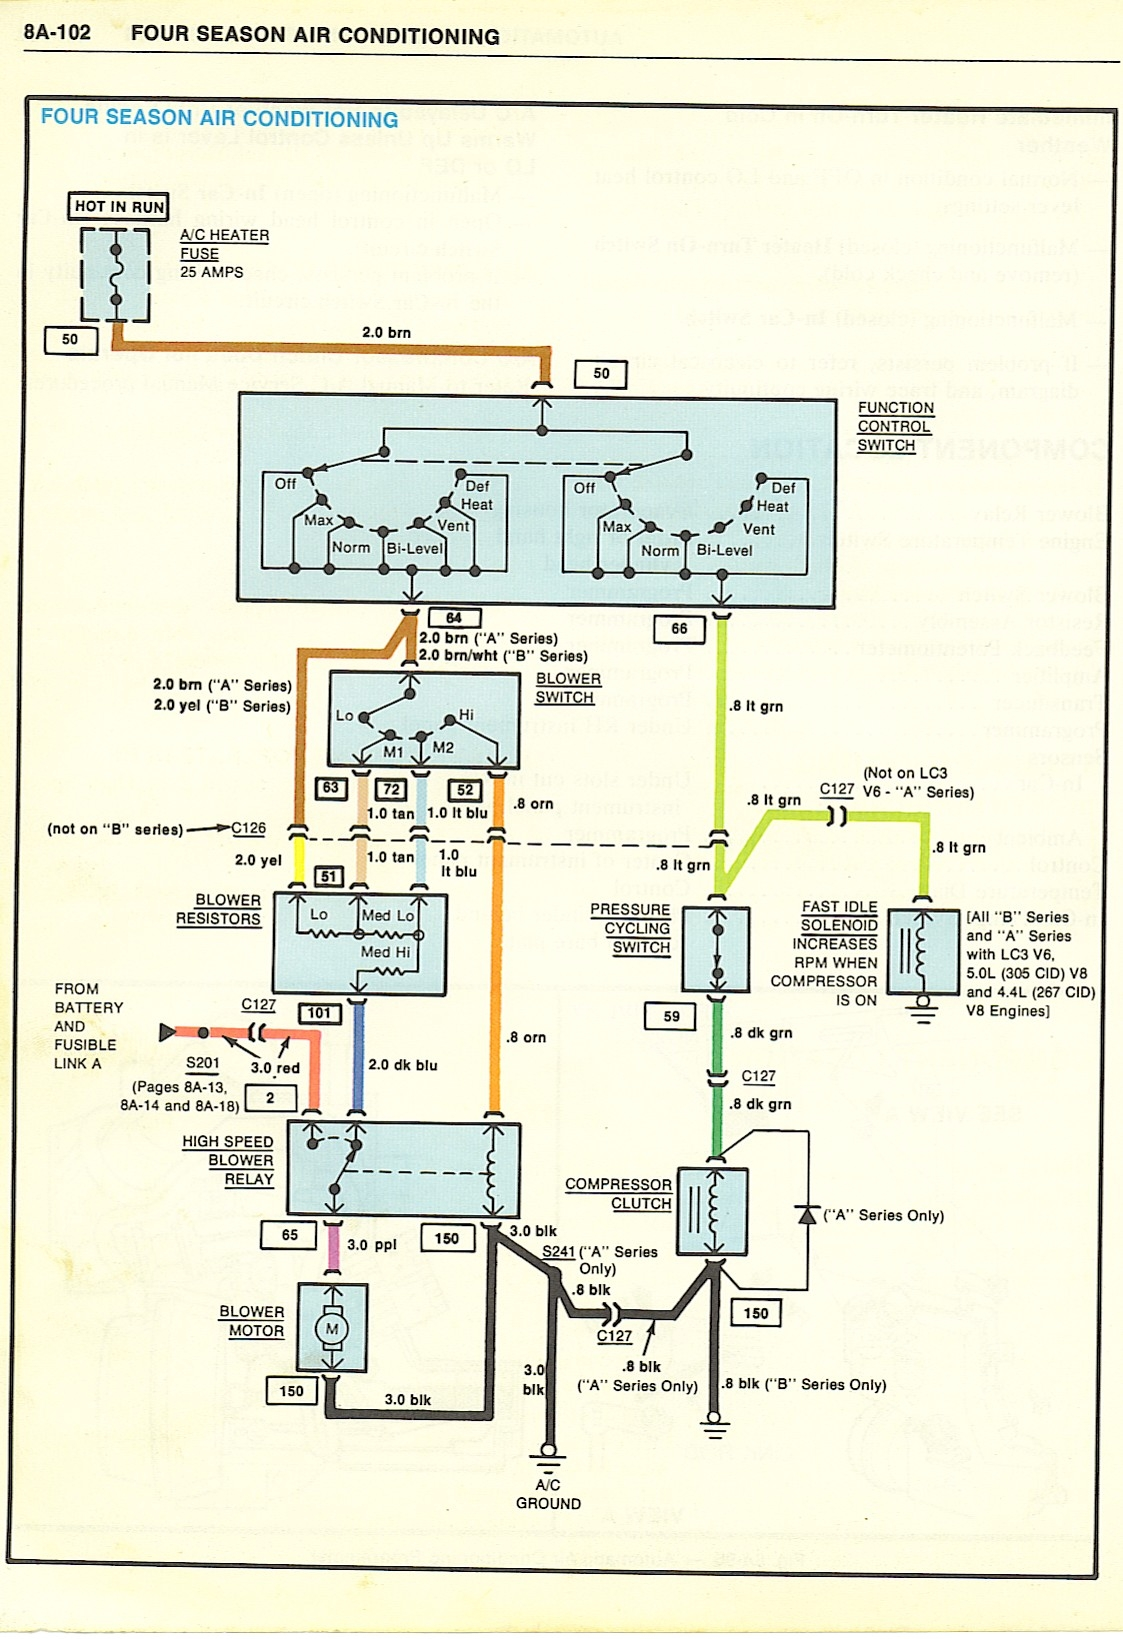 1968 Camero A/C Wiring - Drawing A